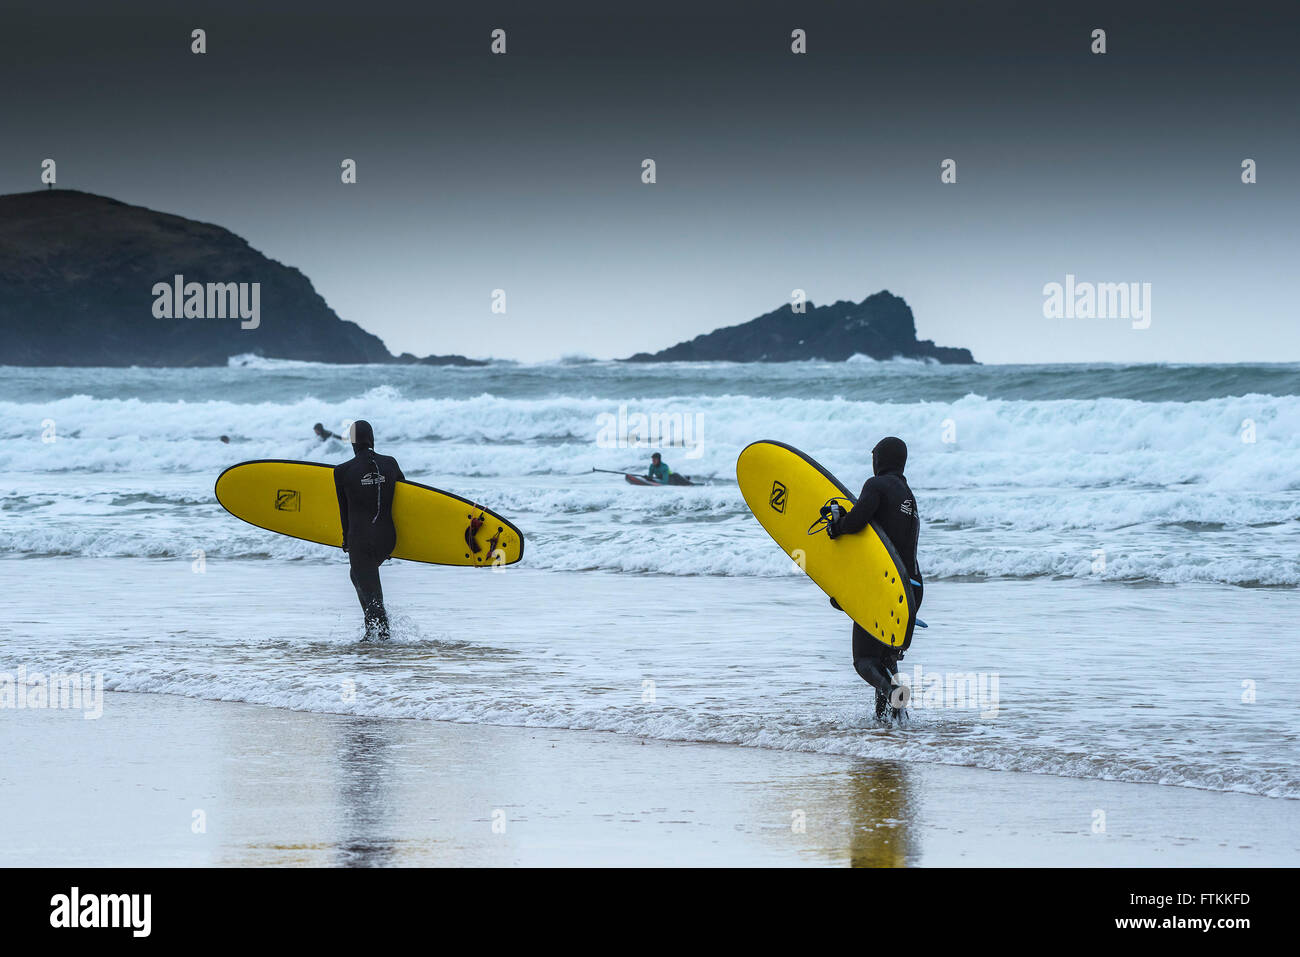 Two surfers carry their surfboards out to sea on a cold, chilly day at Fistral Beach in Newquay, Cornwall. - Stock Image